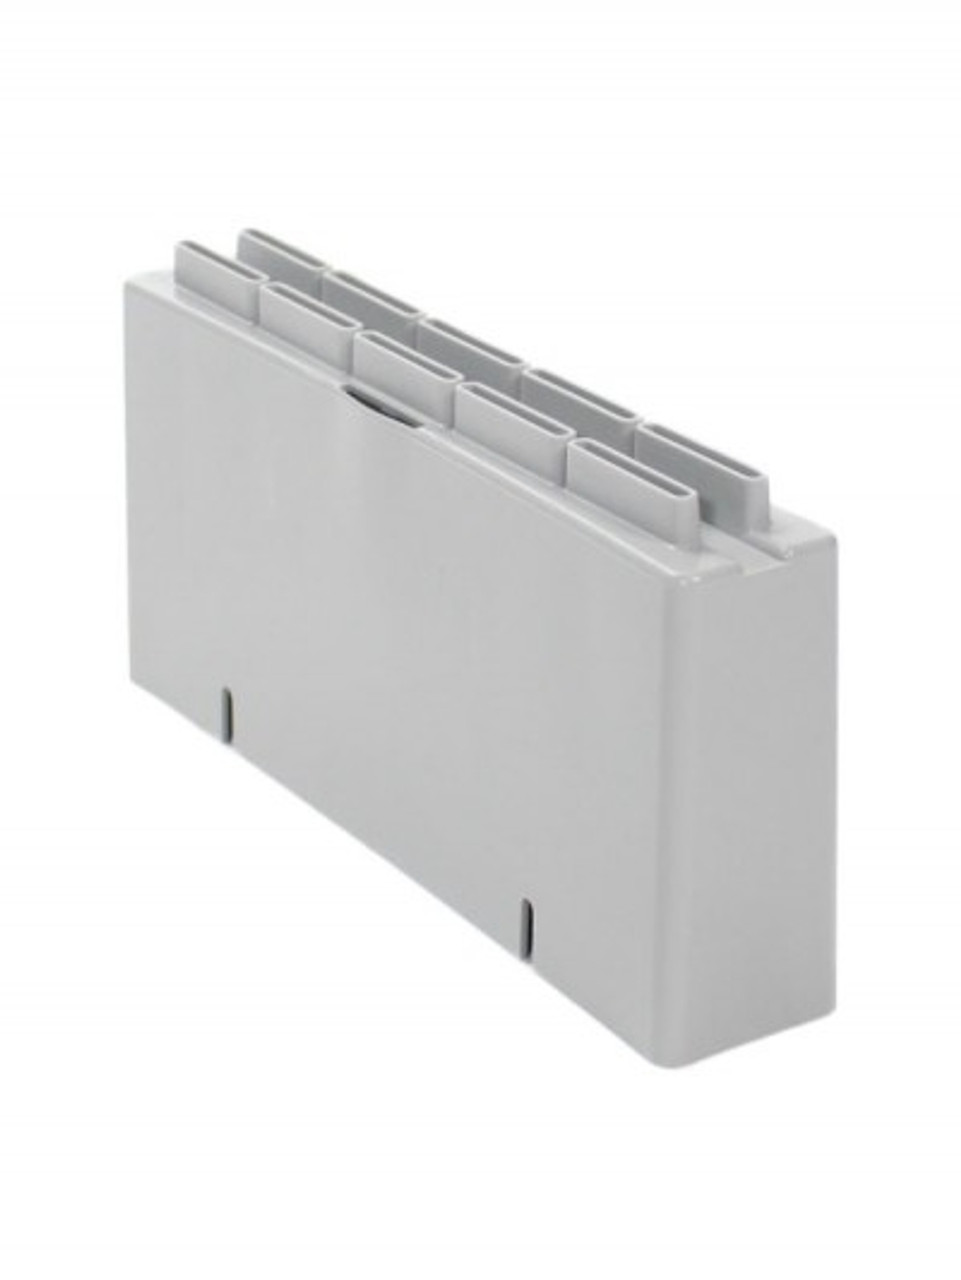 Optional Connector Kit to Connect More Than 1 Receptacle Together